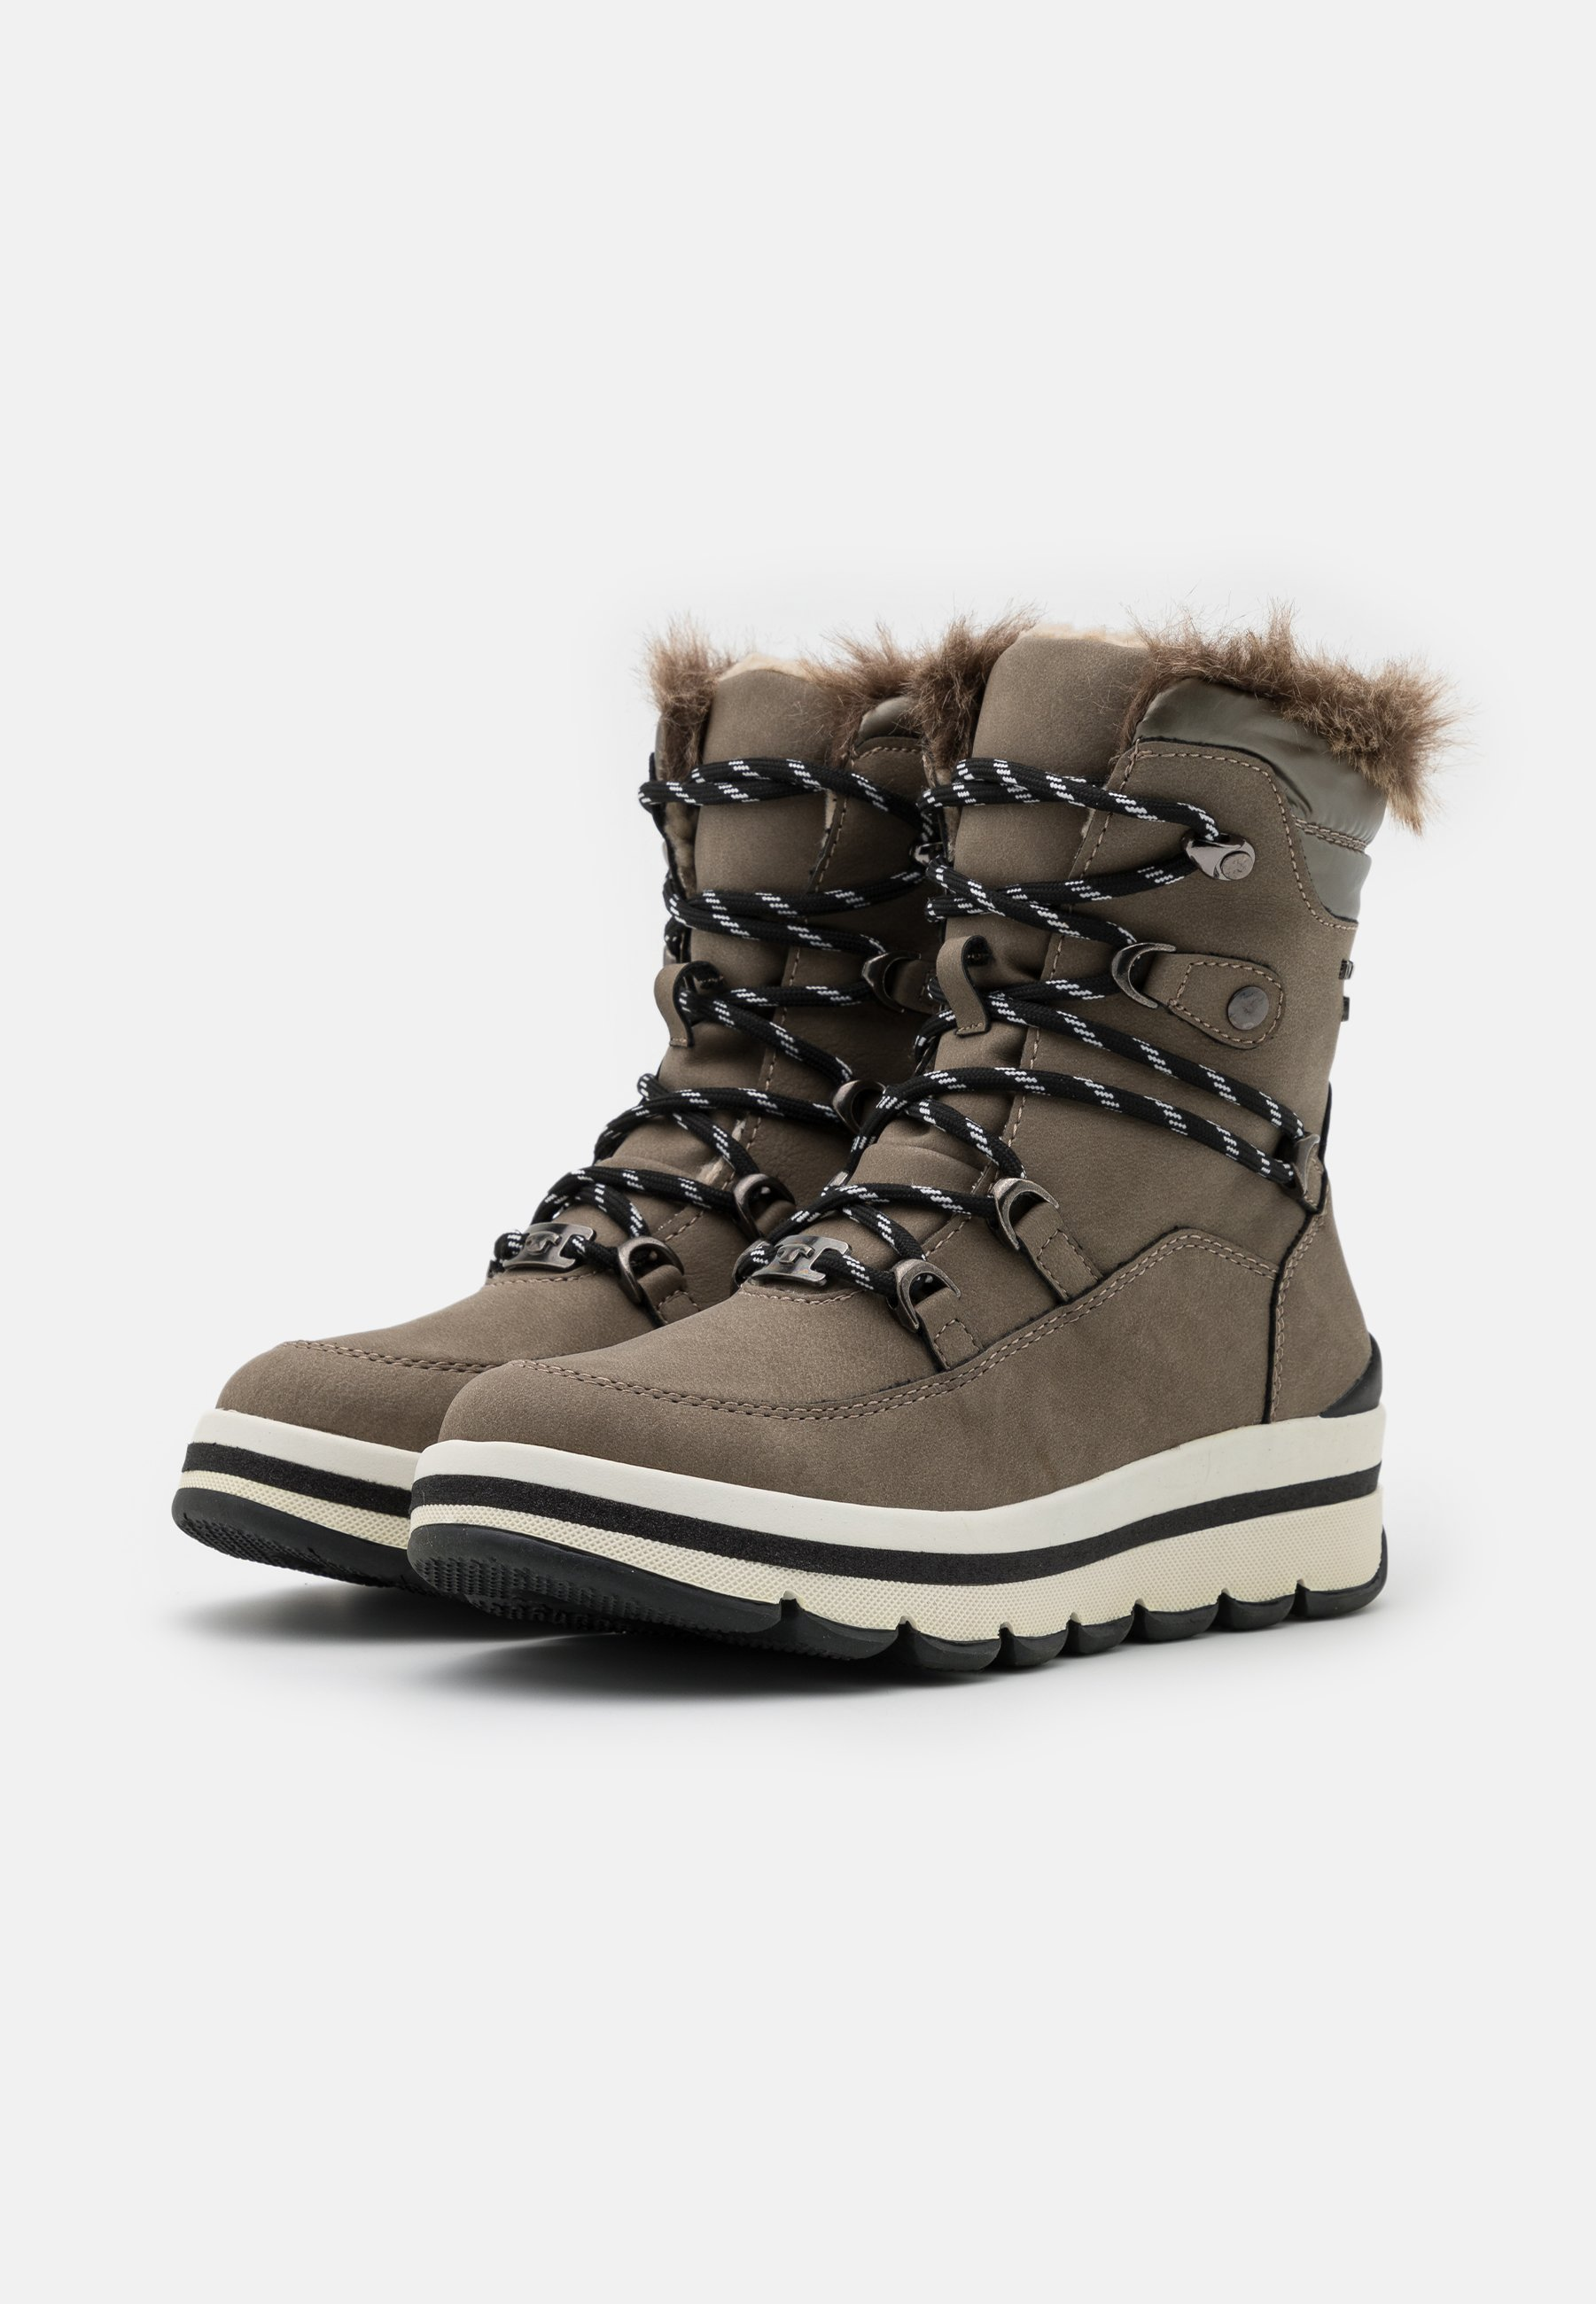 TOM TAILOR Snowboot/Winterstiefel mud/taupe